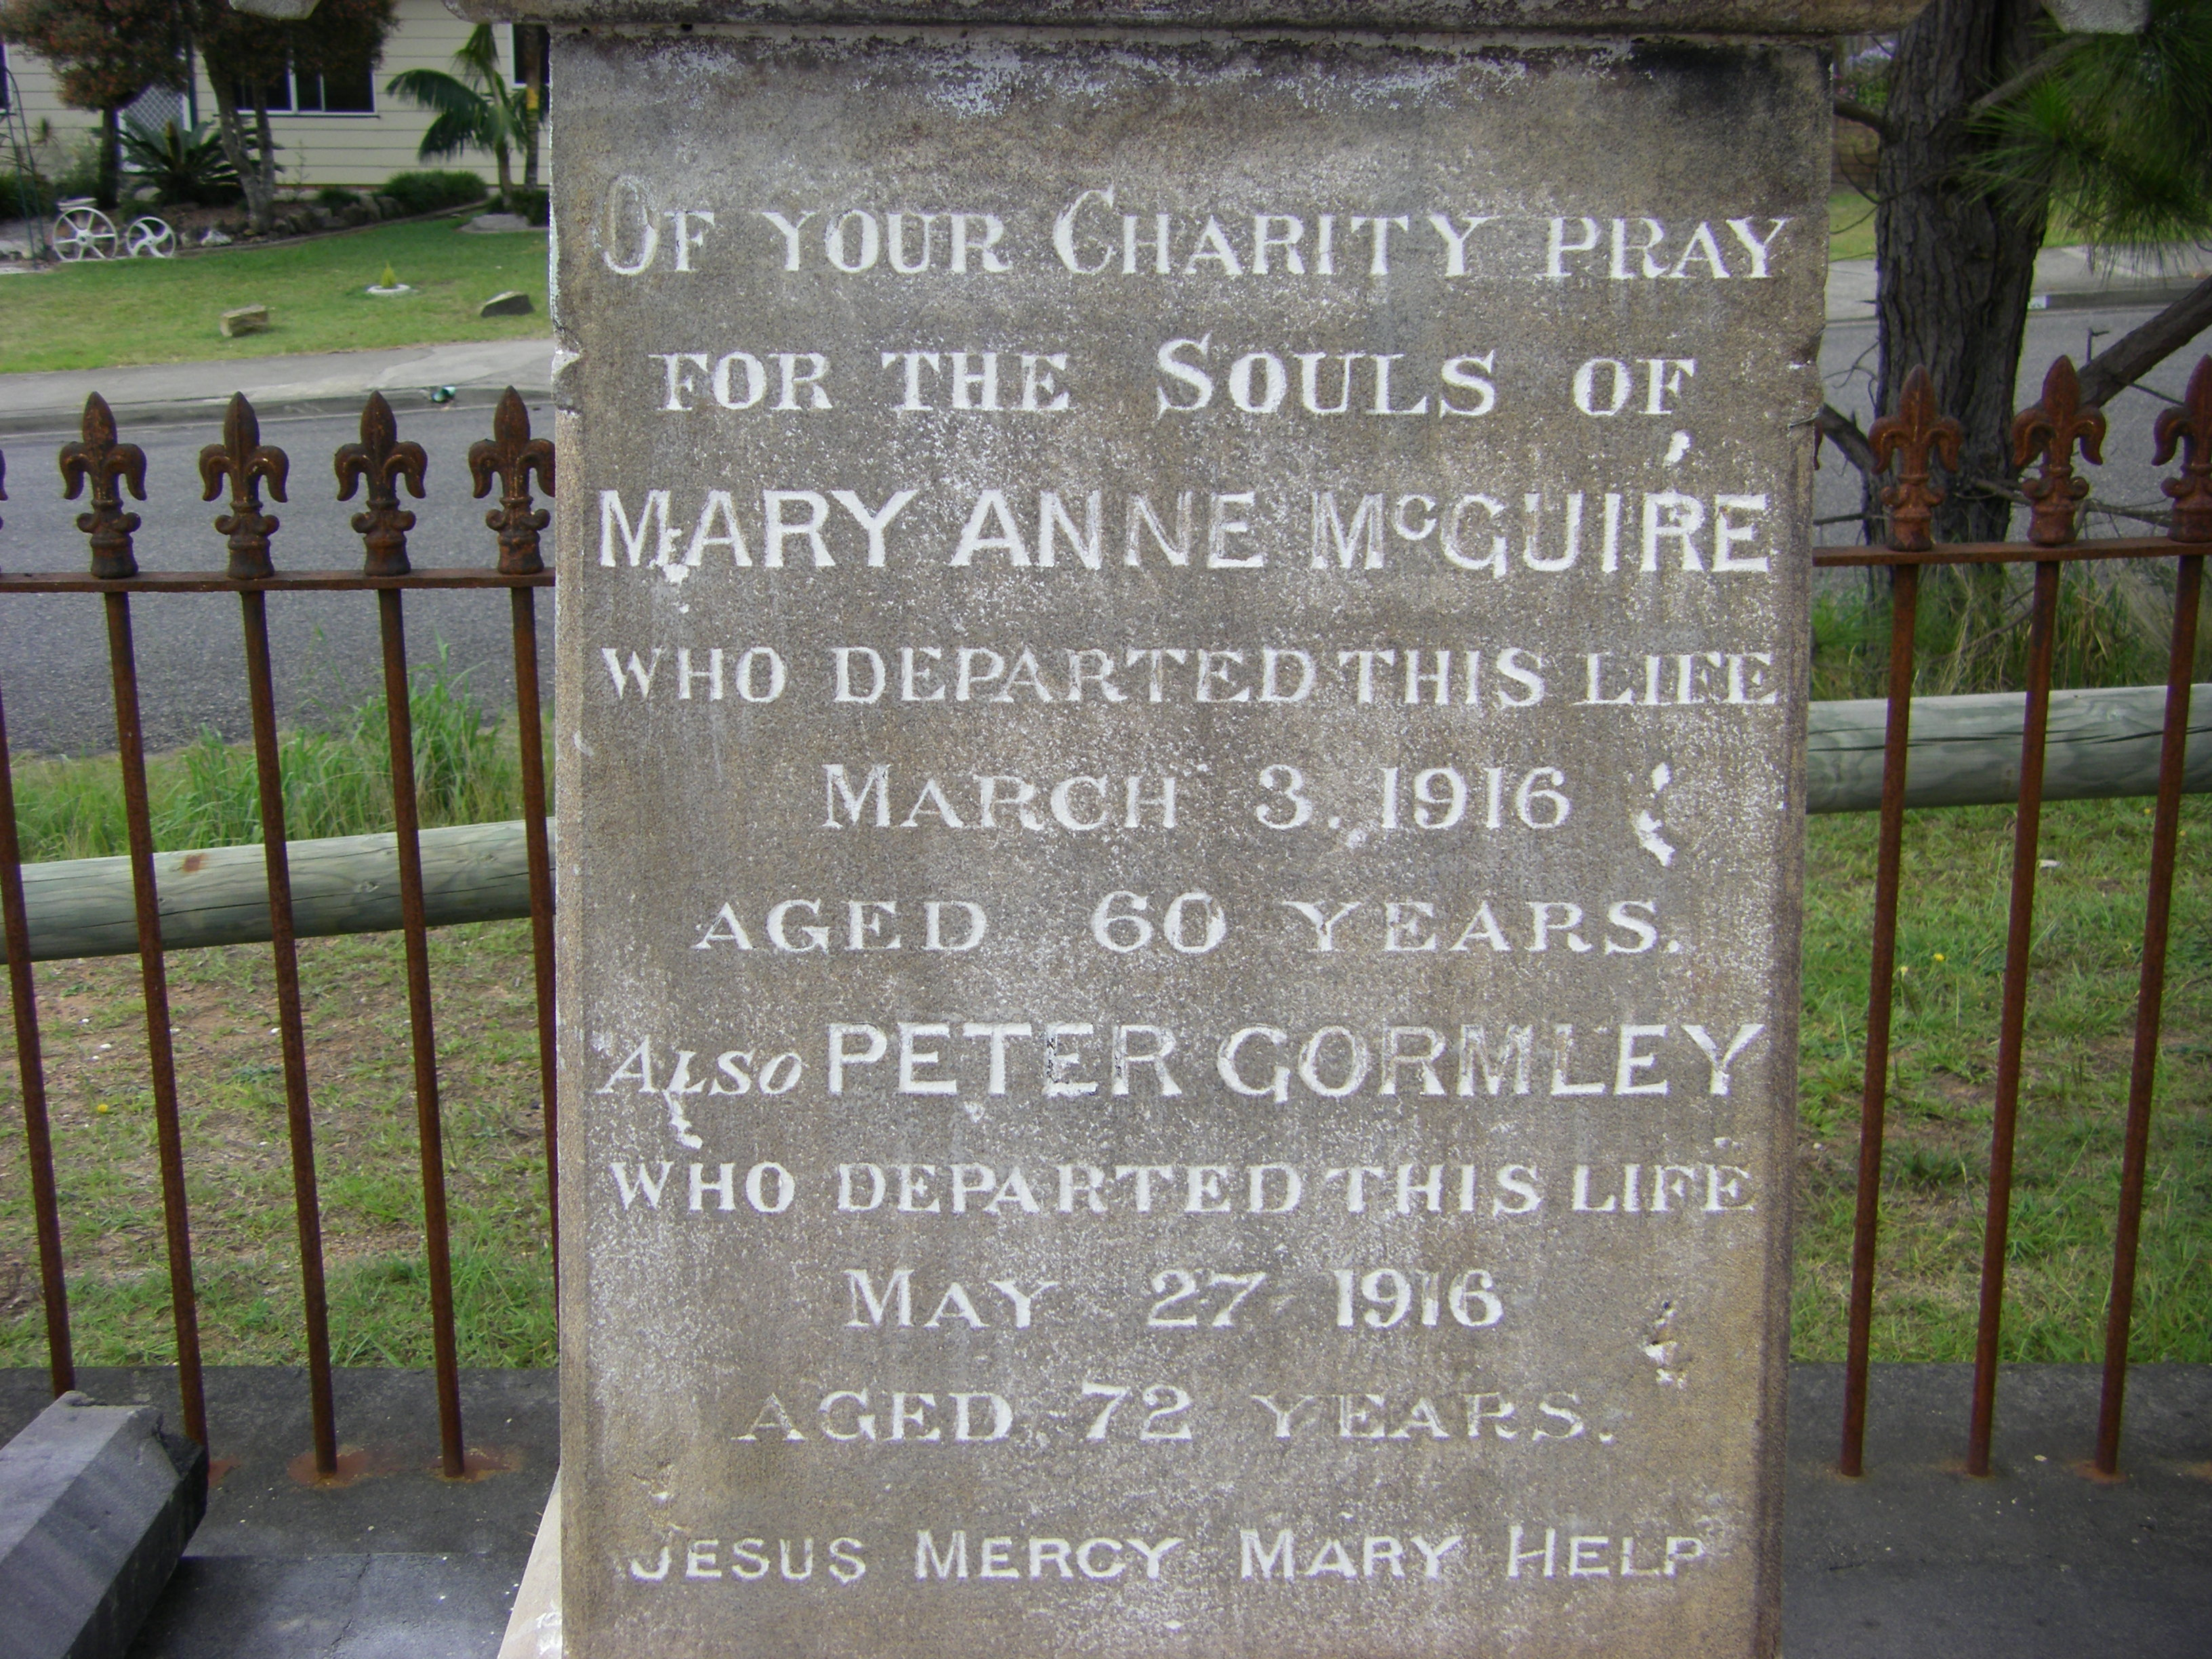 Mary Ann McGuire and Peter Gormley